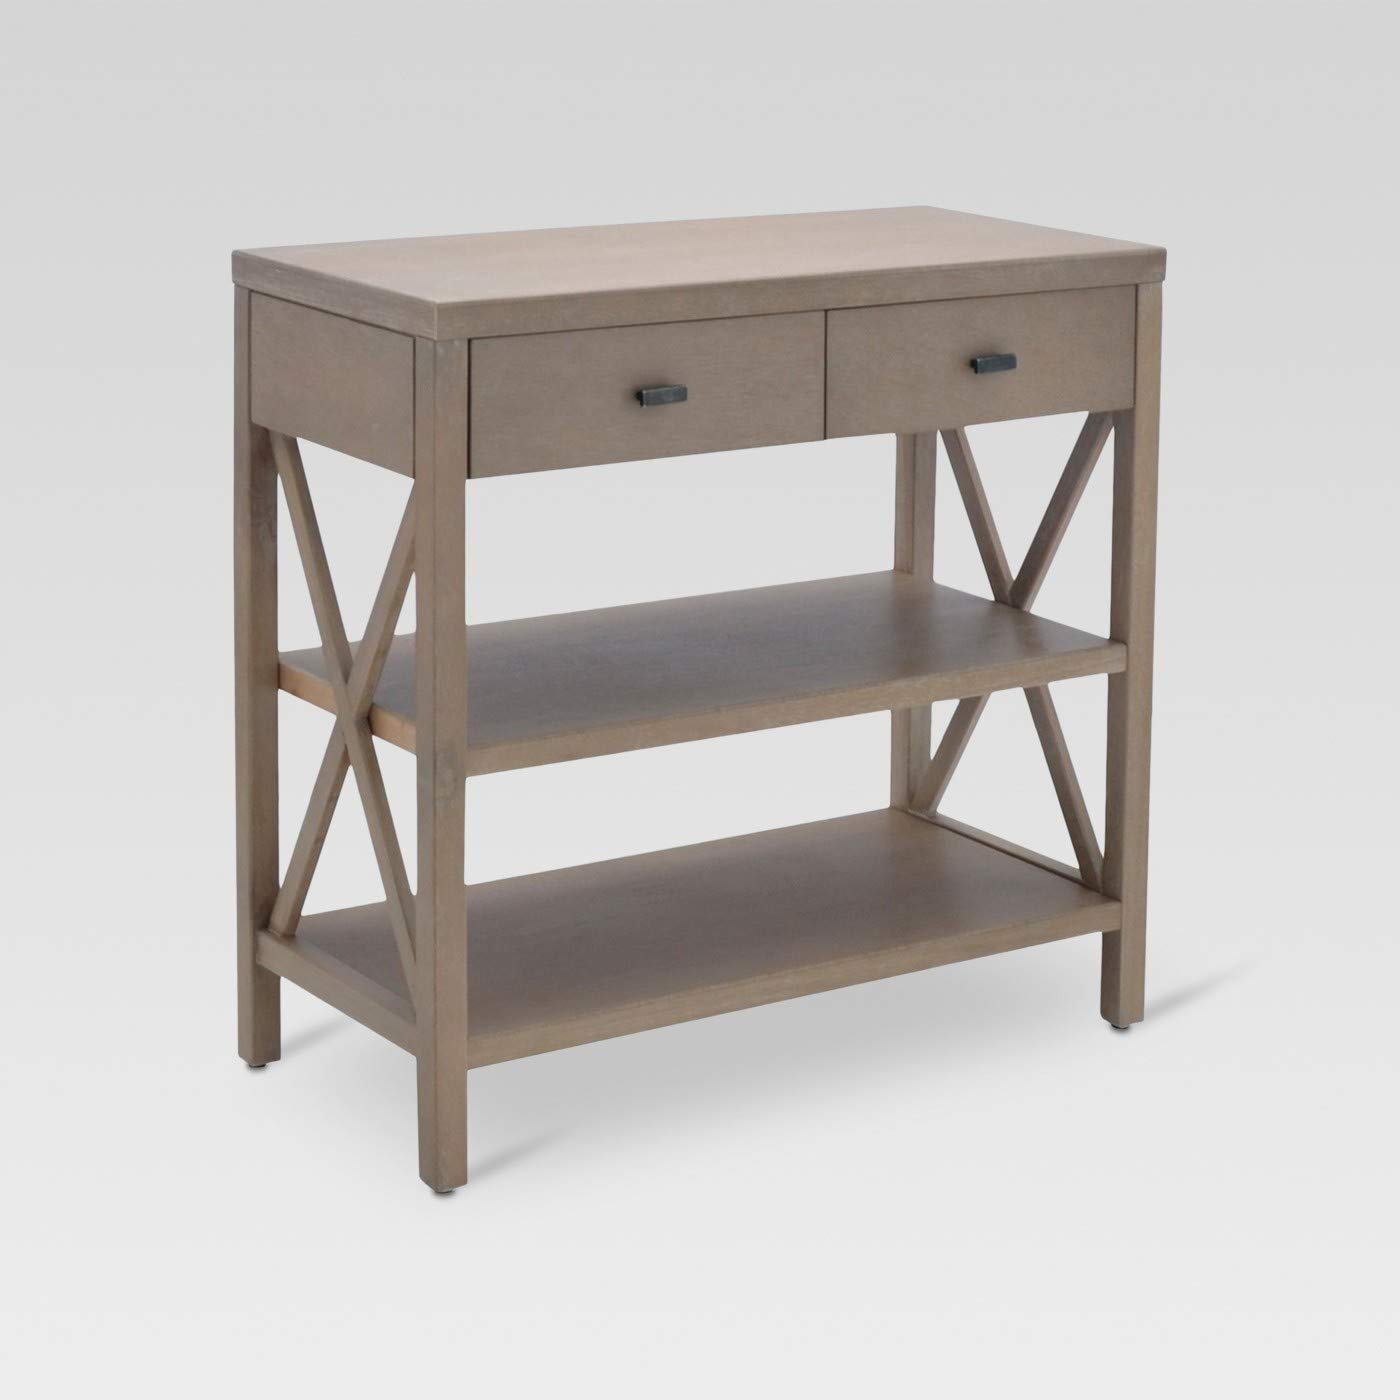 owings console table shelf with drawers threshold accent kitchen dining kids nic farmhouse and chairs unique cabinets target round wood side tuscan hills oversized wall clock